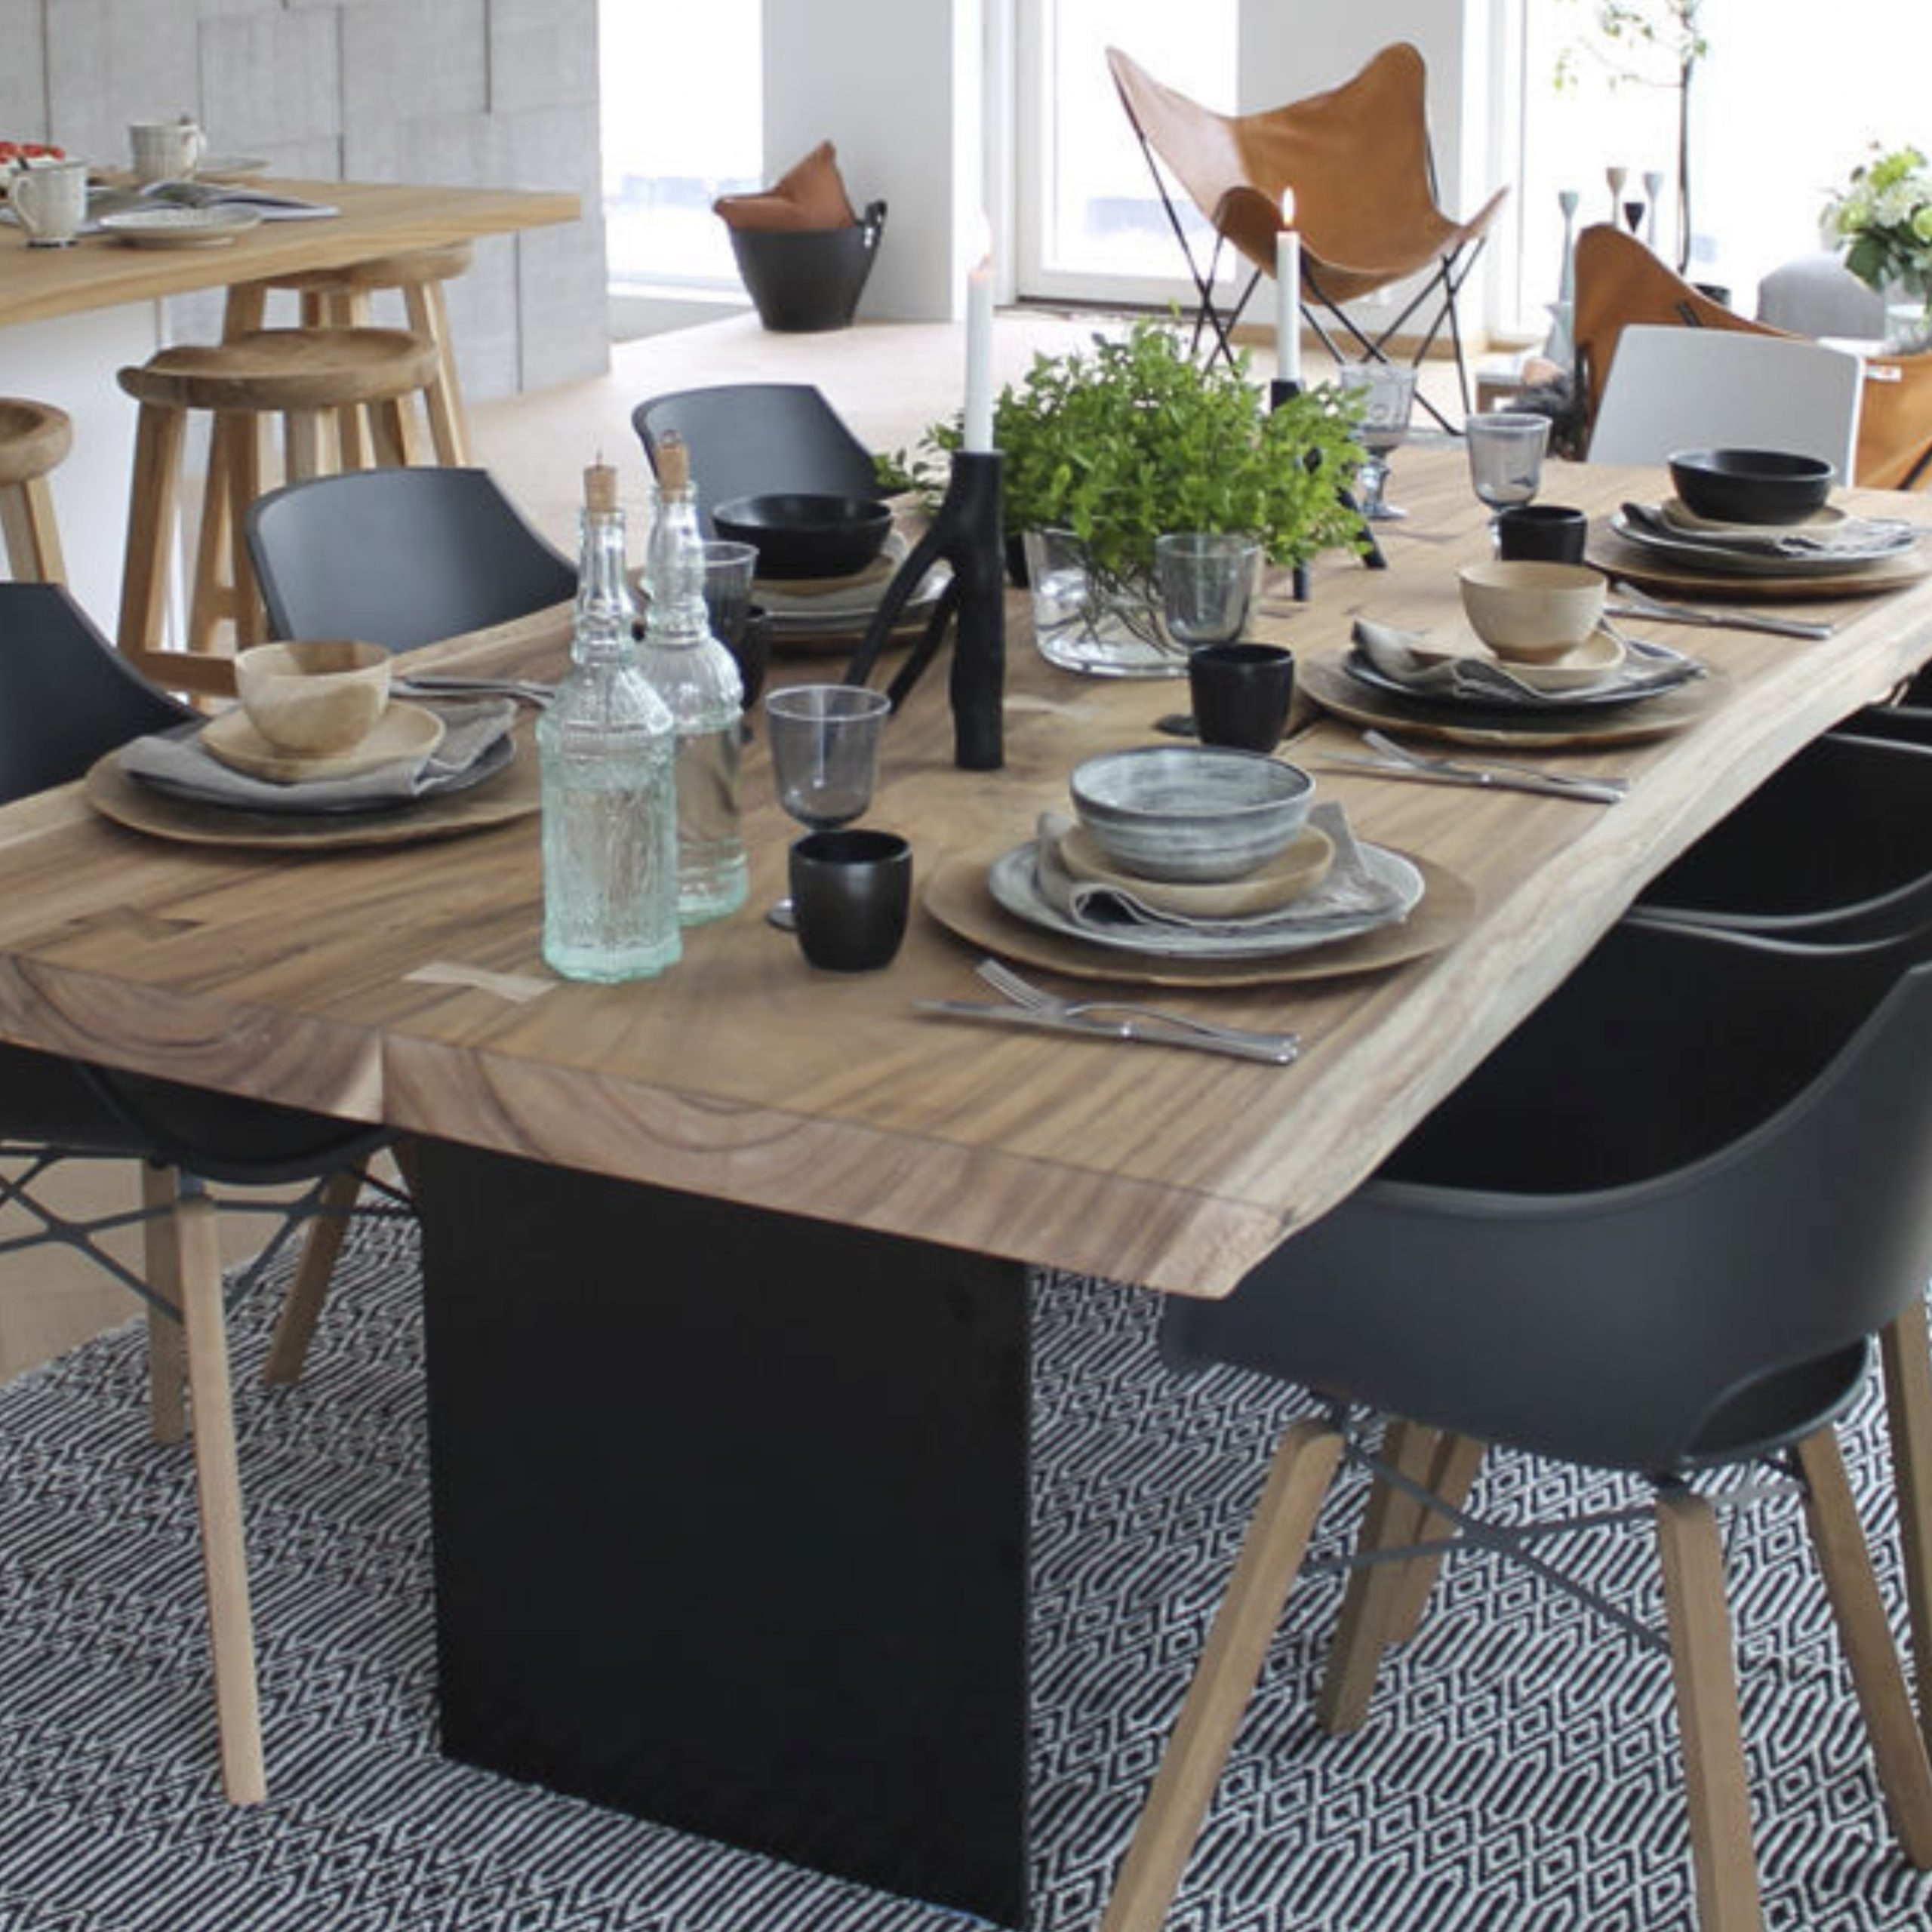 Most Current Eames Style Dining Tables With Wooden Legs With Edge Dining Table Stellar – Couture Outdoor (View 20 of 30)